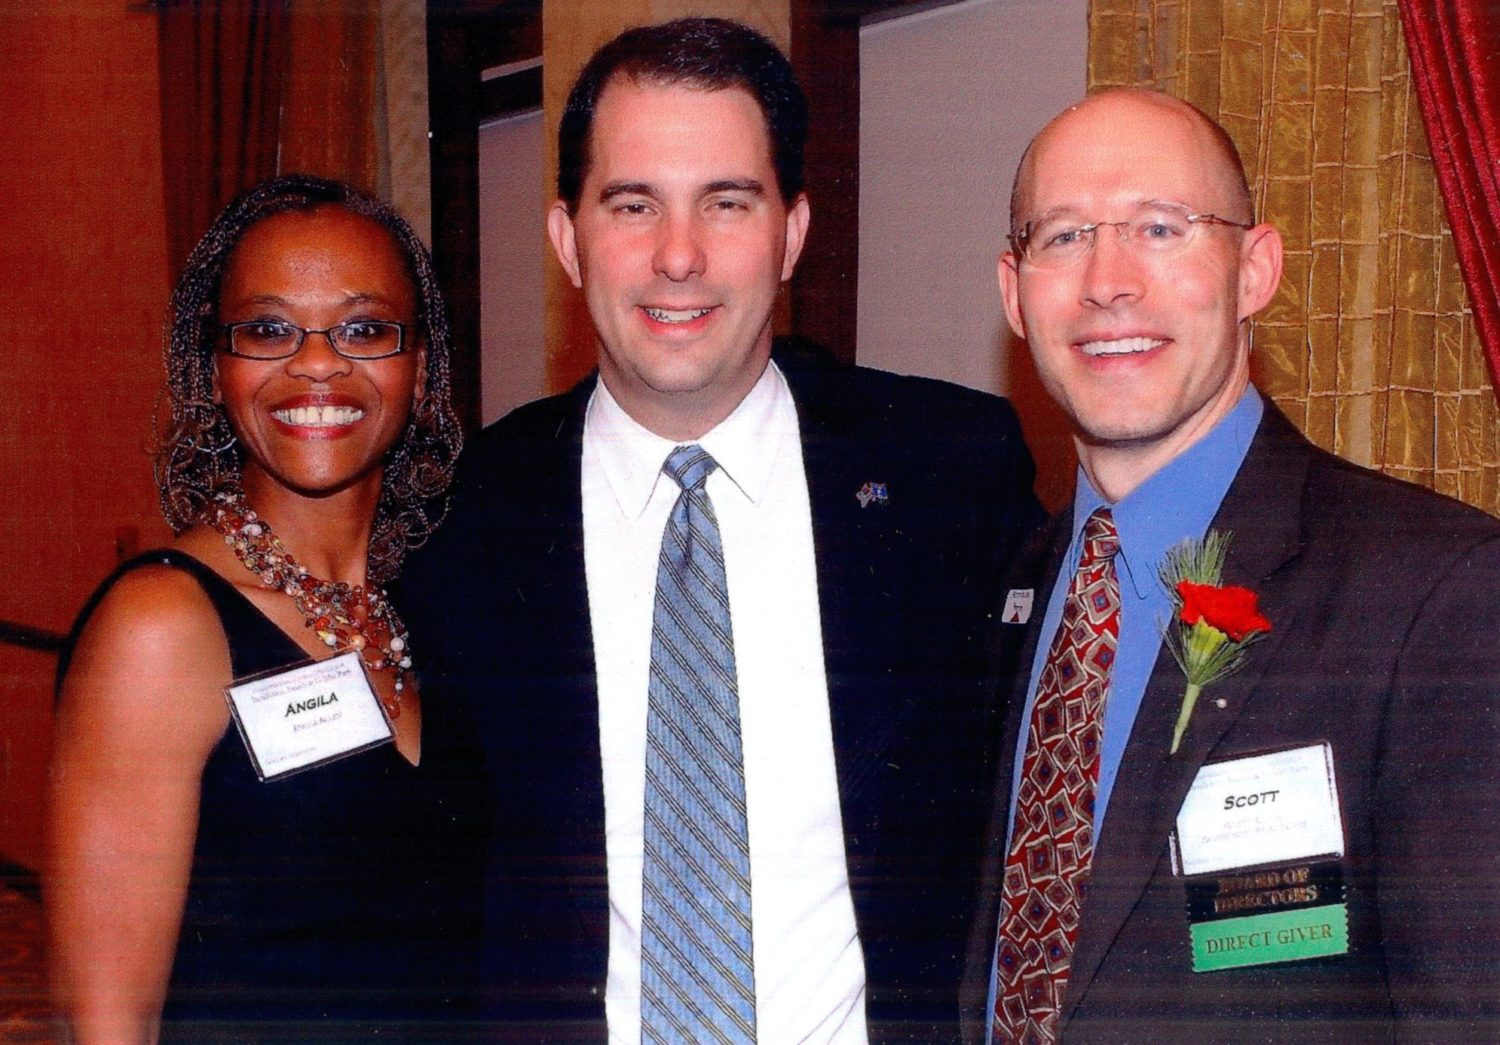 Scott Walker with Angila & Scott Allen